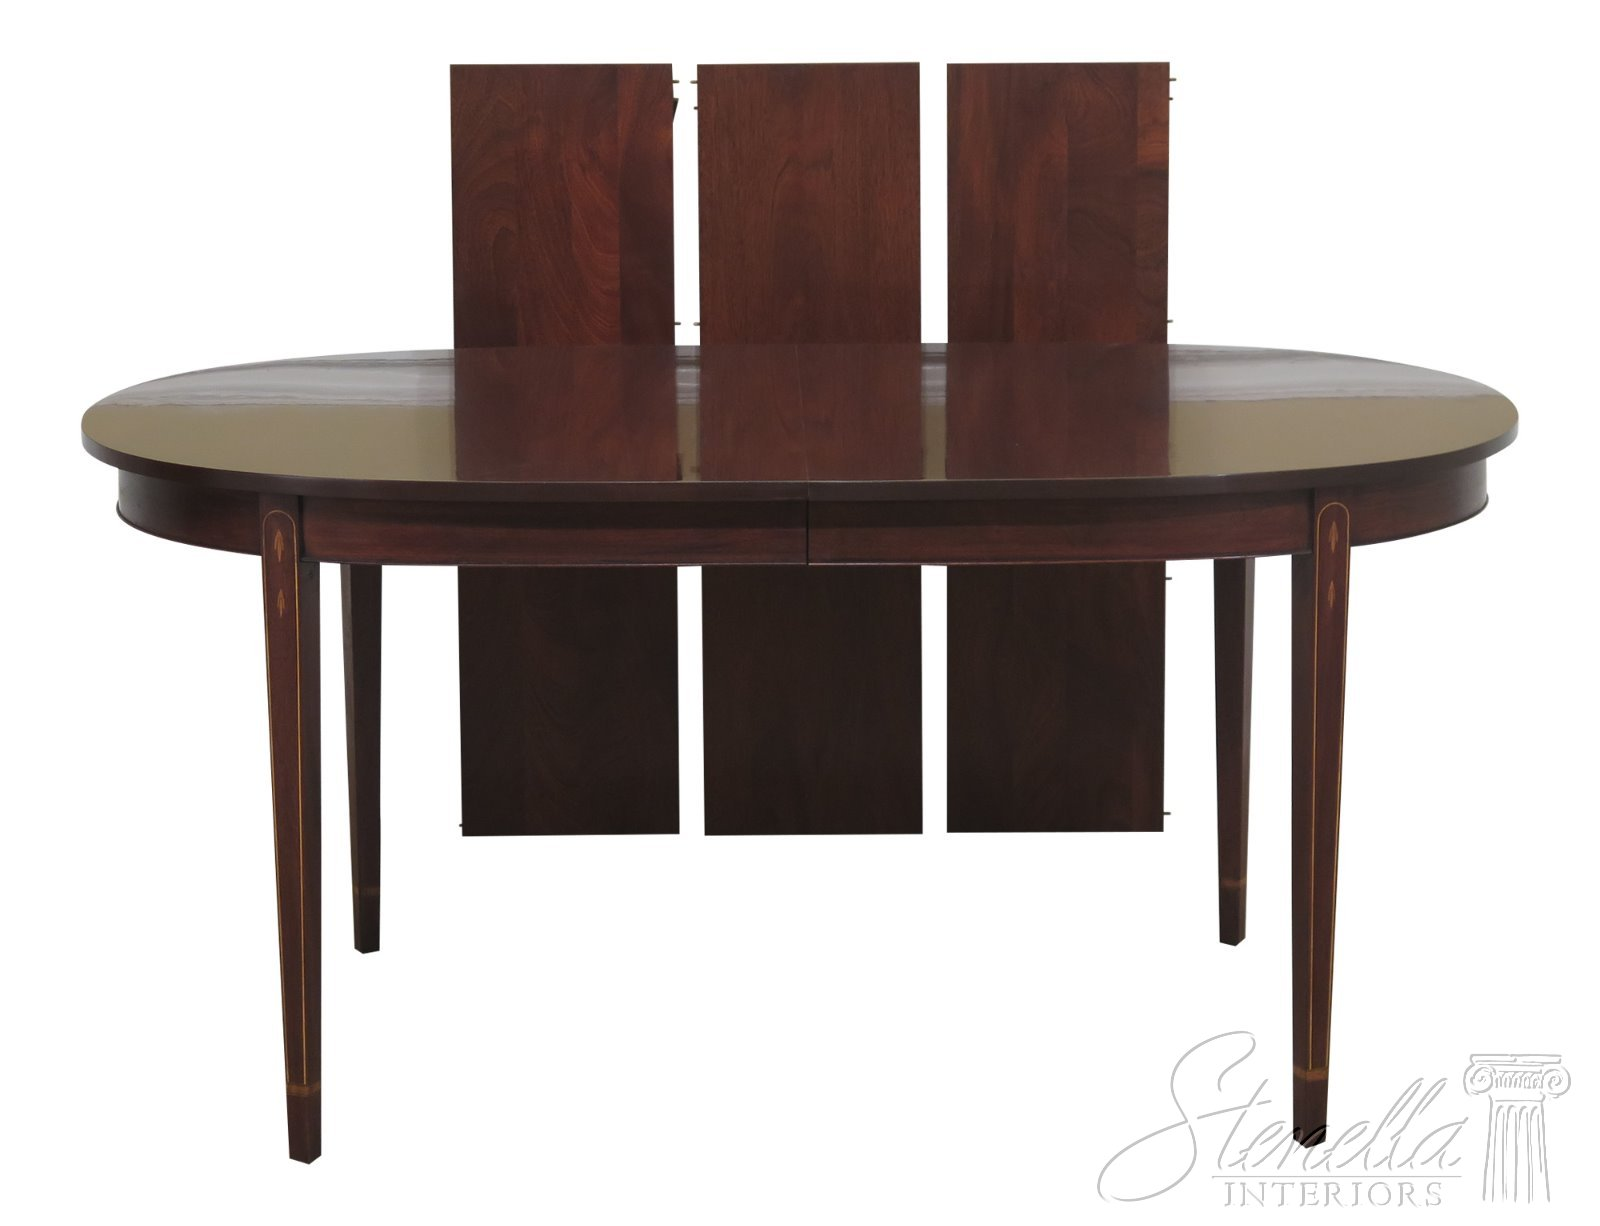 Details about 29765EC: HENKEL HARRIS Federal Inlaid Mahogany Dining Room  Table